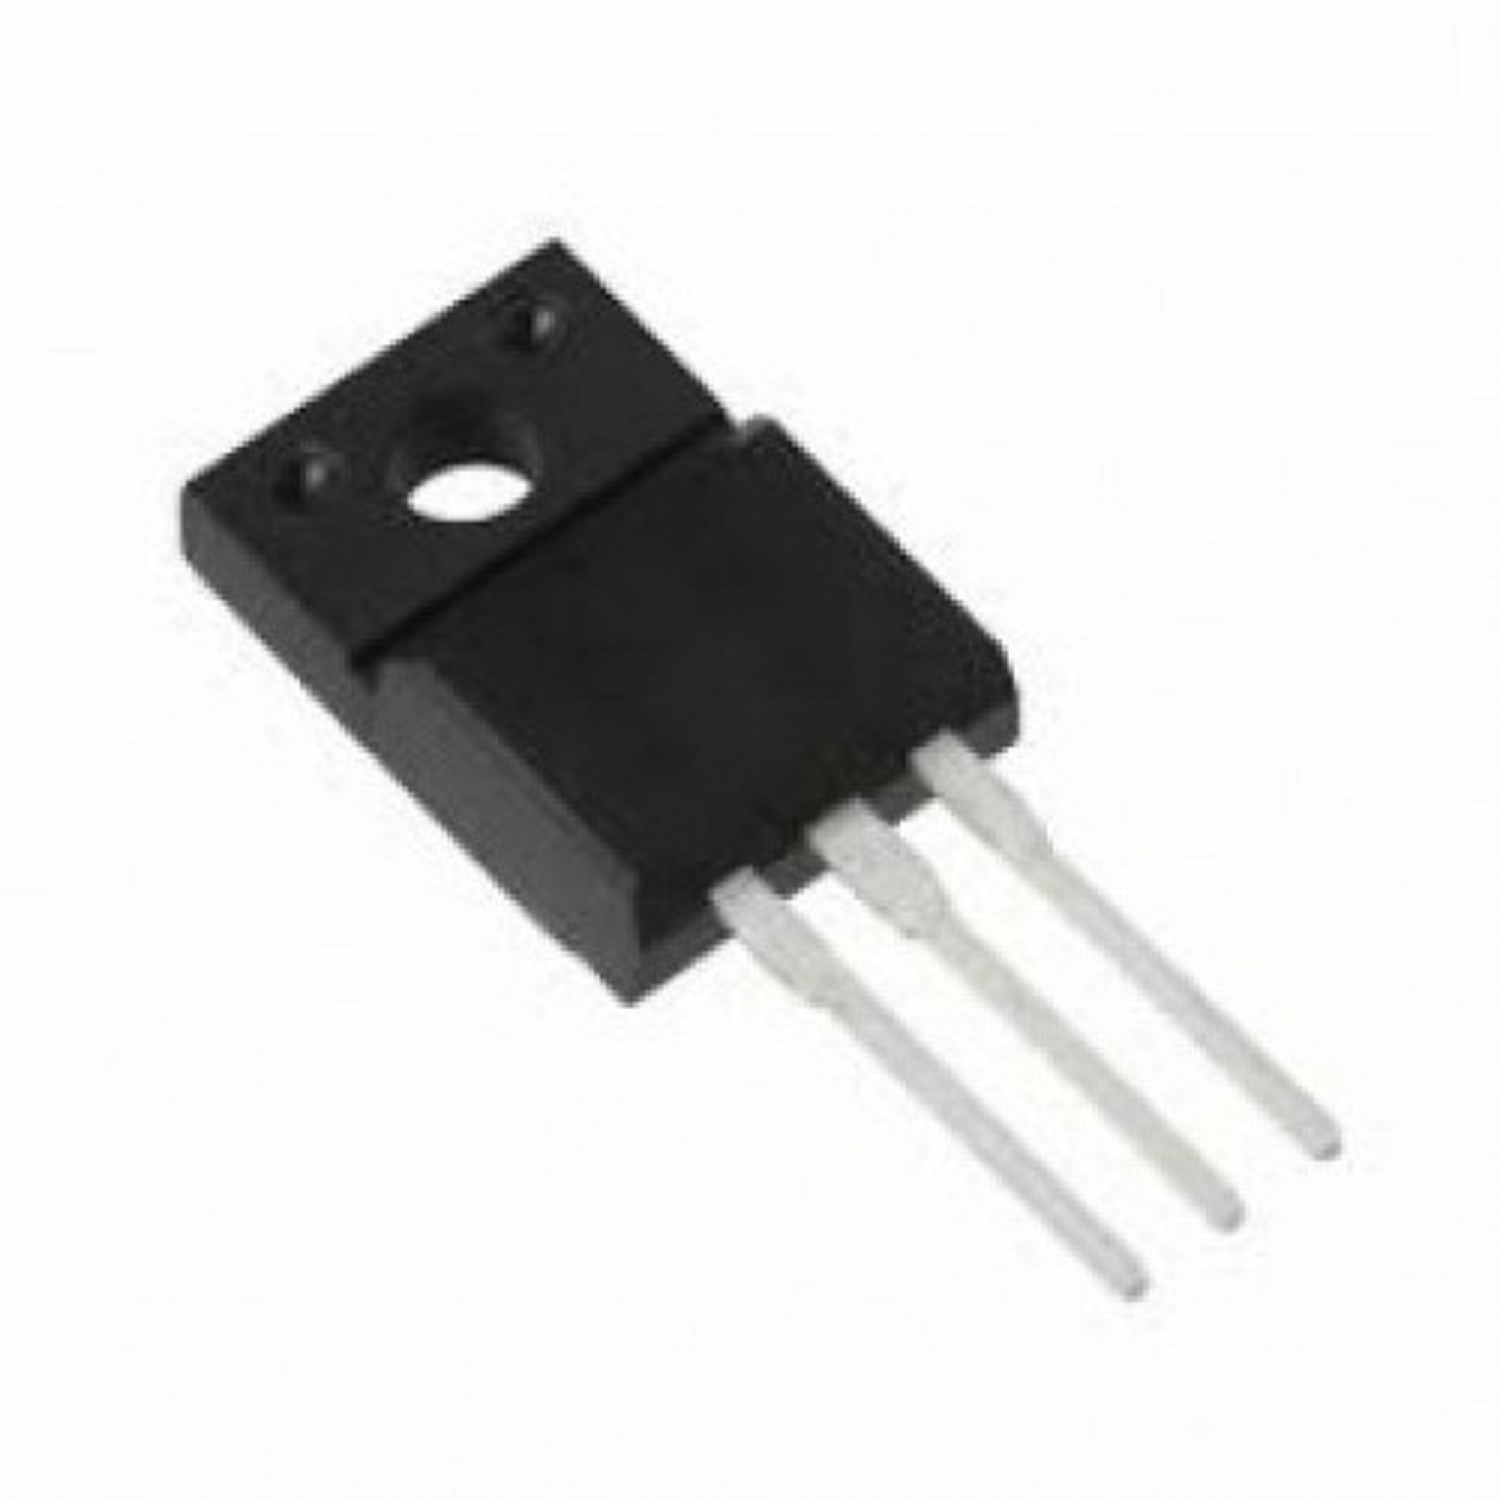 5pcs Ic An7812f 7812 An7812 To 220 Voltage Regulator 12v Replacing Circuit 1 Of See More